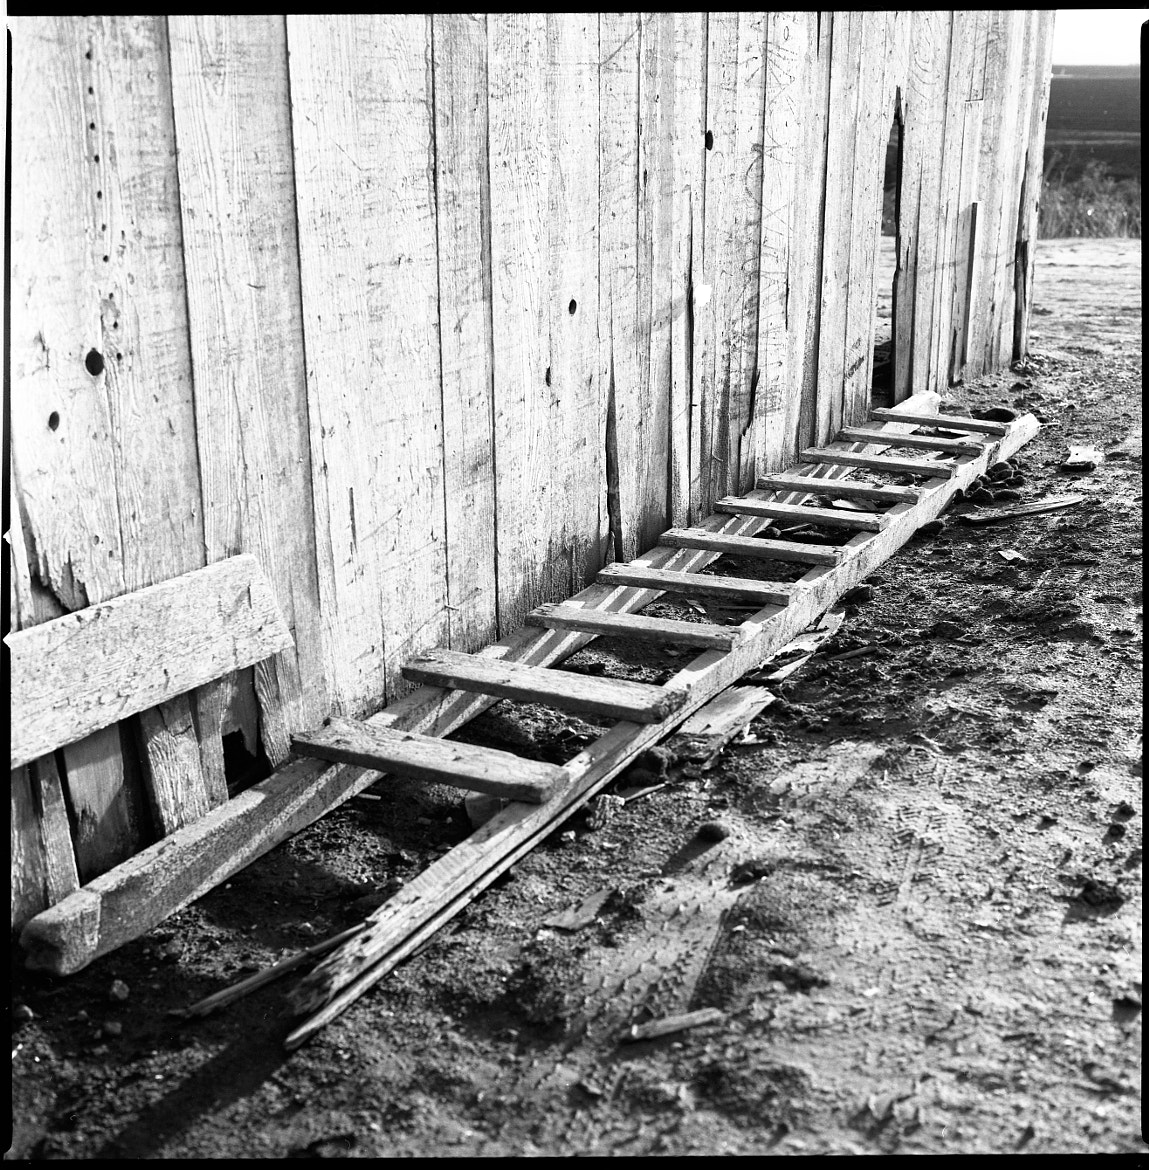 Photograph Ladder on the Ground by Brad Tito on 500px